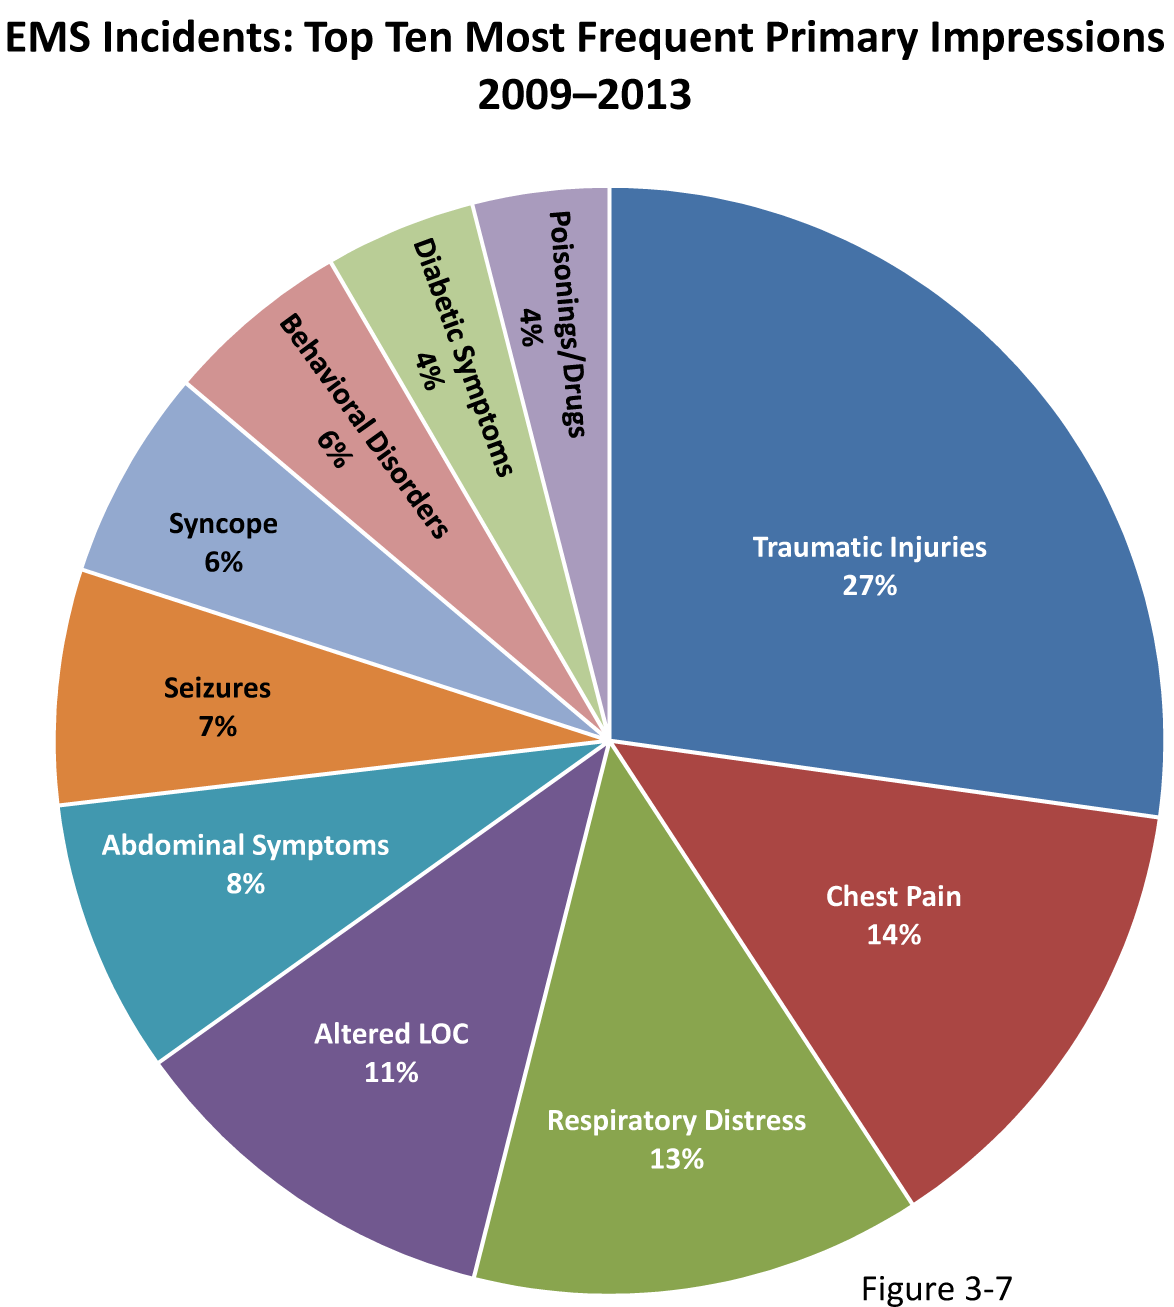 Figure 3-7: Pie chart showing top 10 most frequent Emergency Medical Services